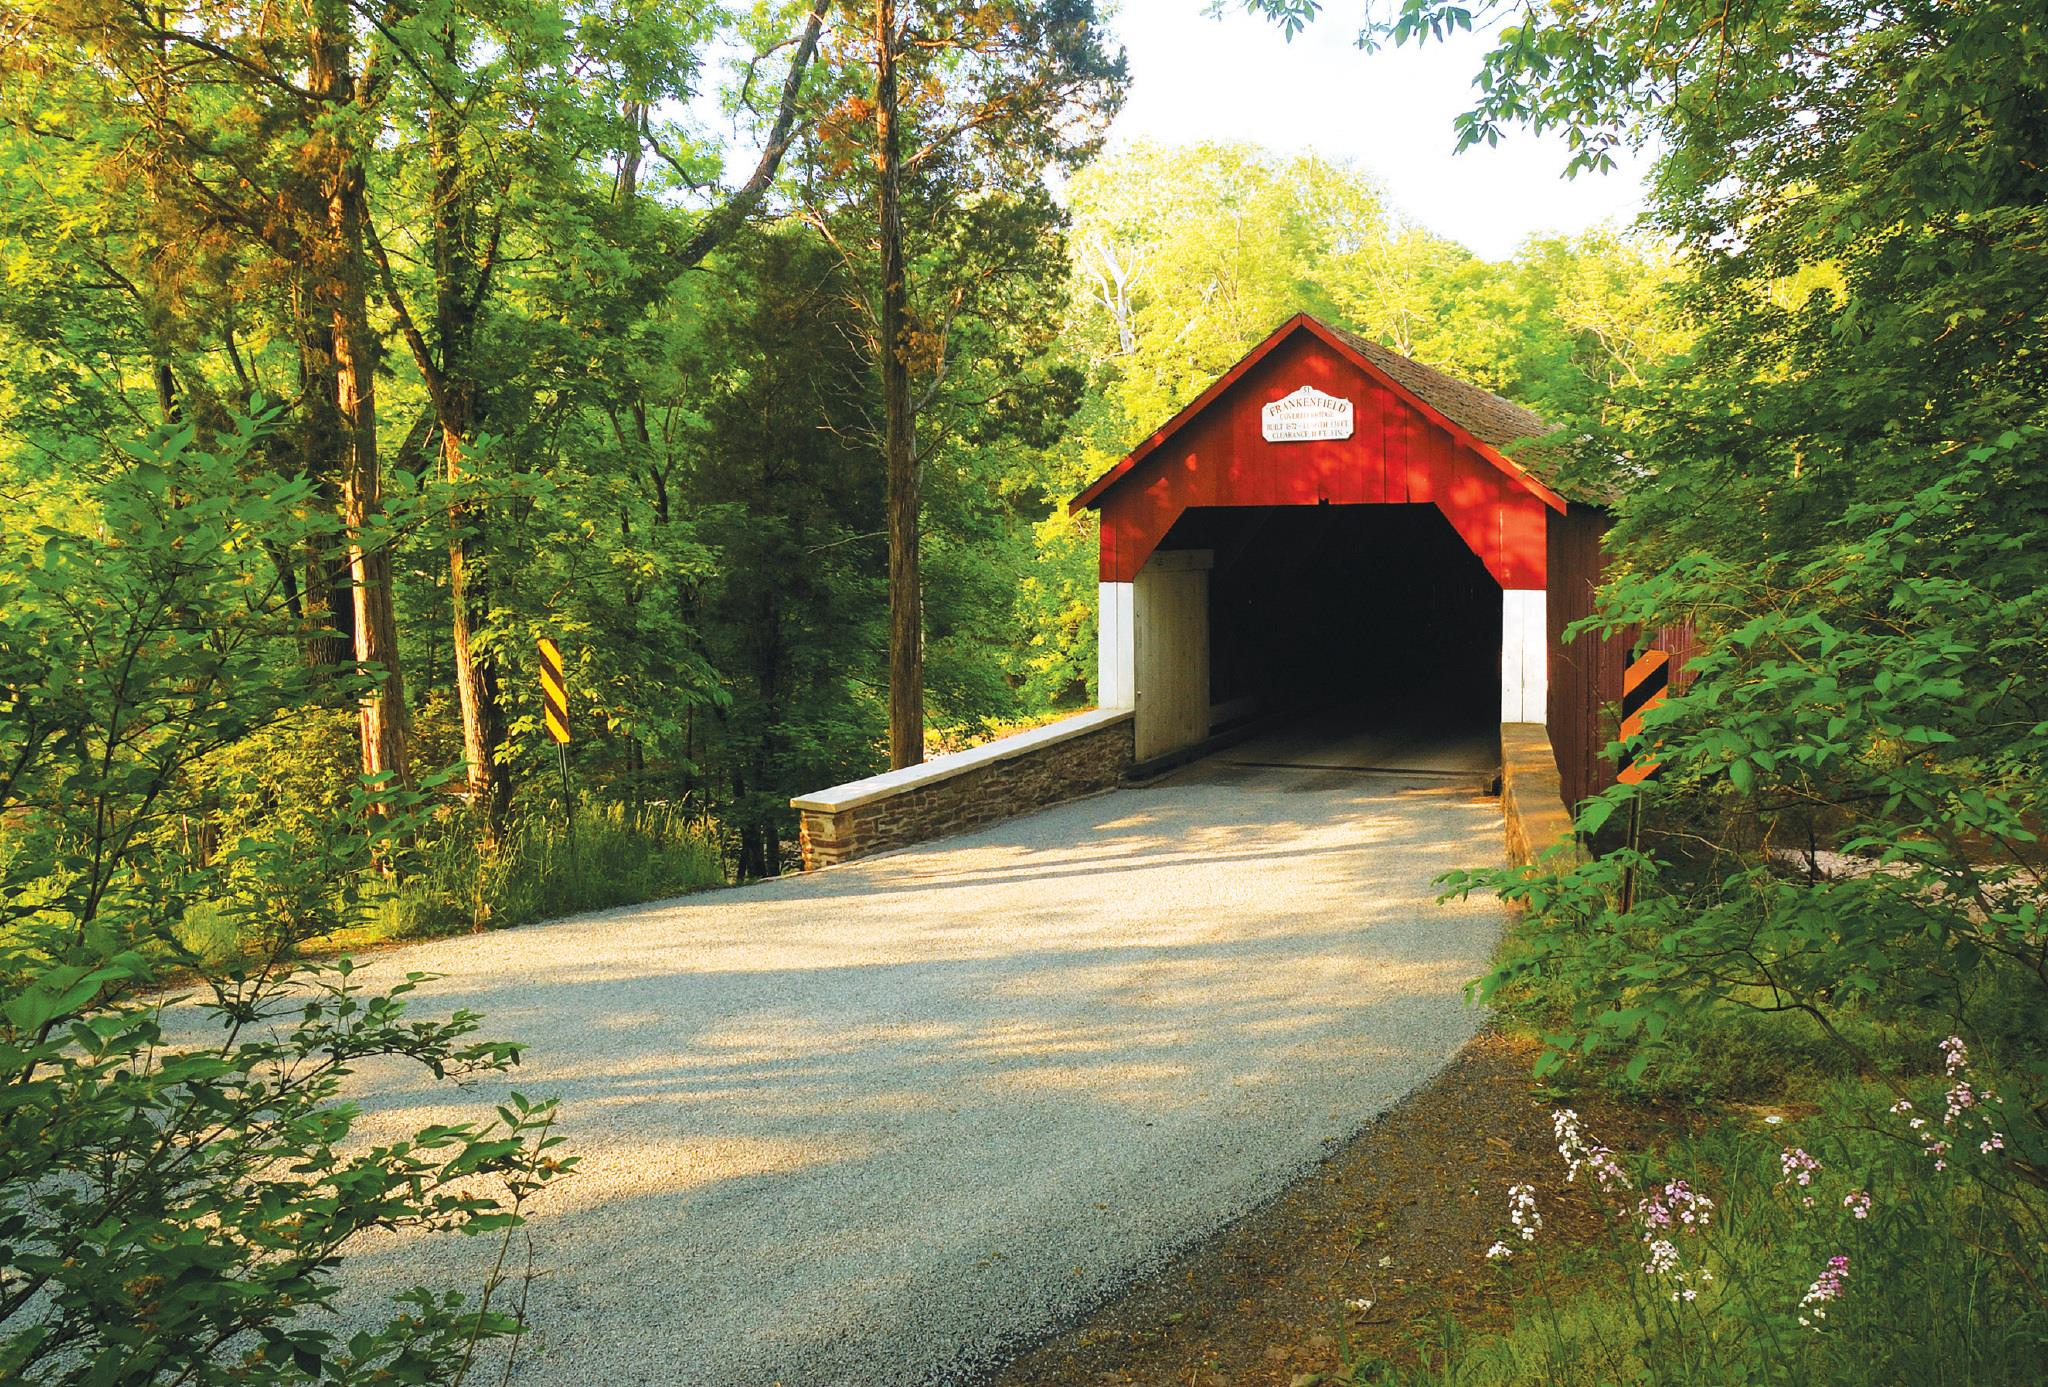 Covered Bridges of Bucks County